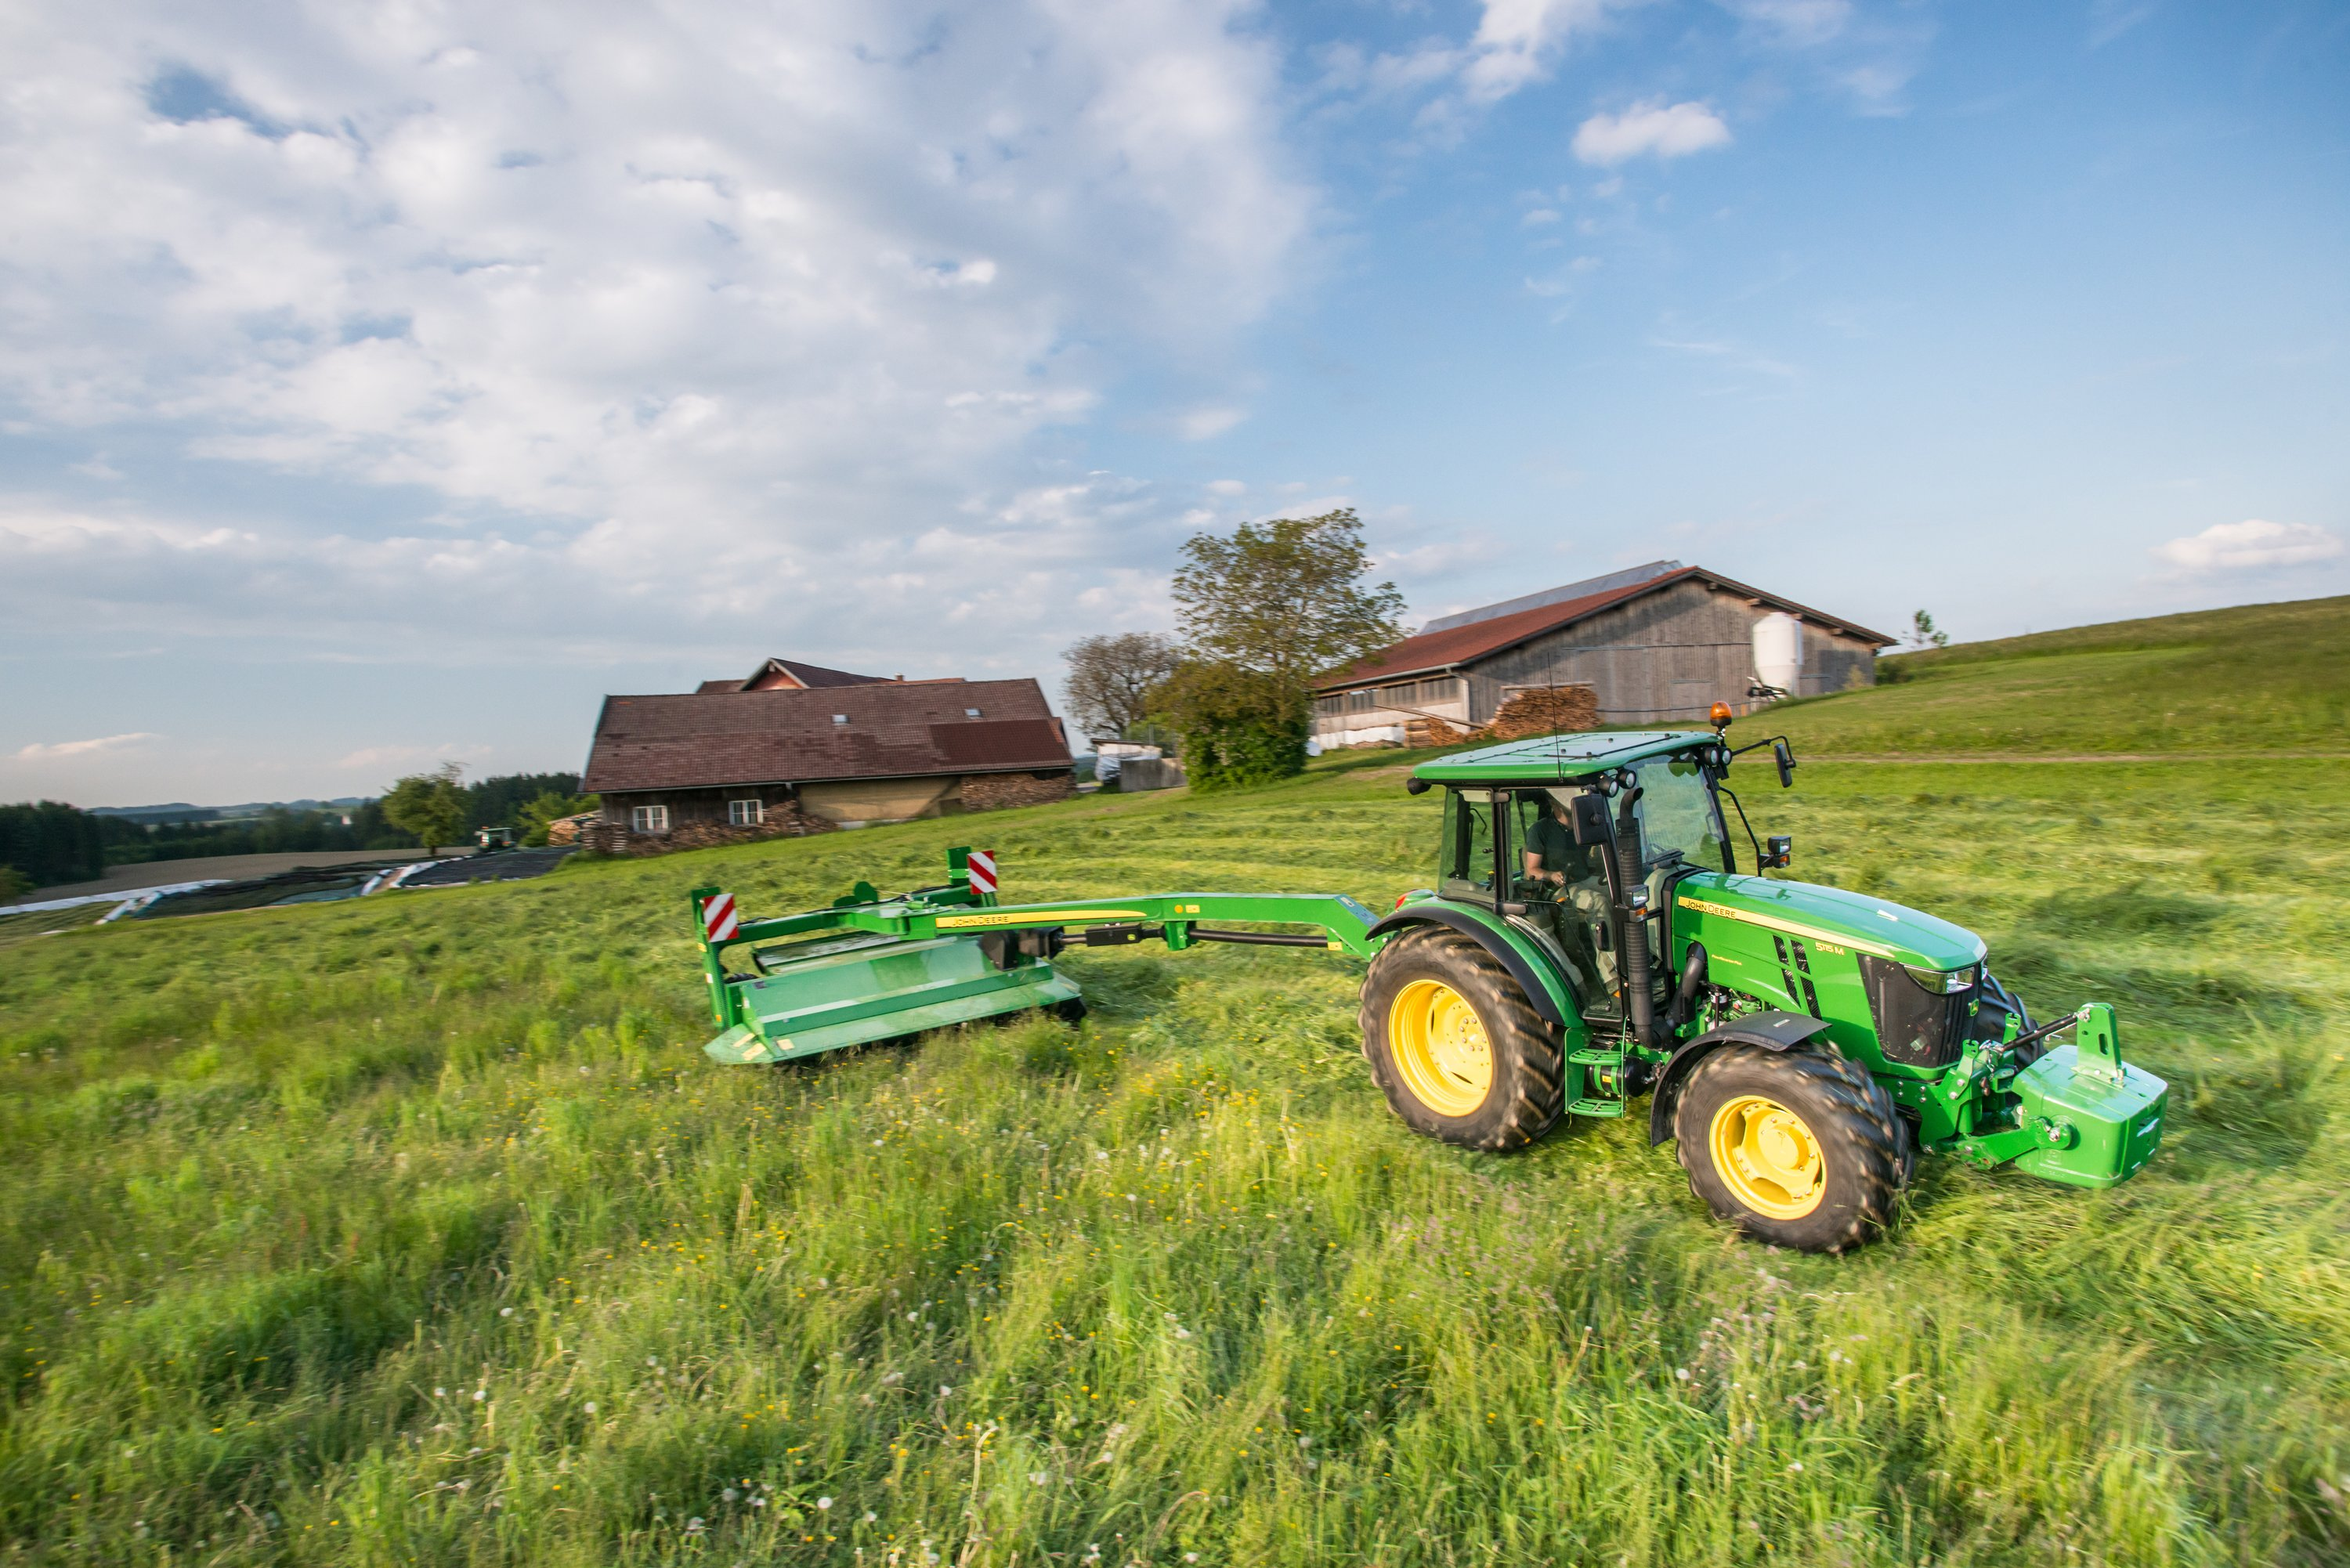 Tams Ii What It Is And How To Apply Farmer Friendly Solar Based Electric Fencer For Rural Agriculture New John Deere 630 Mower Conditioner